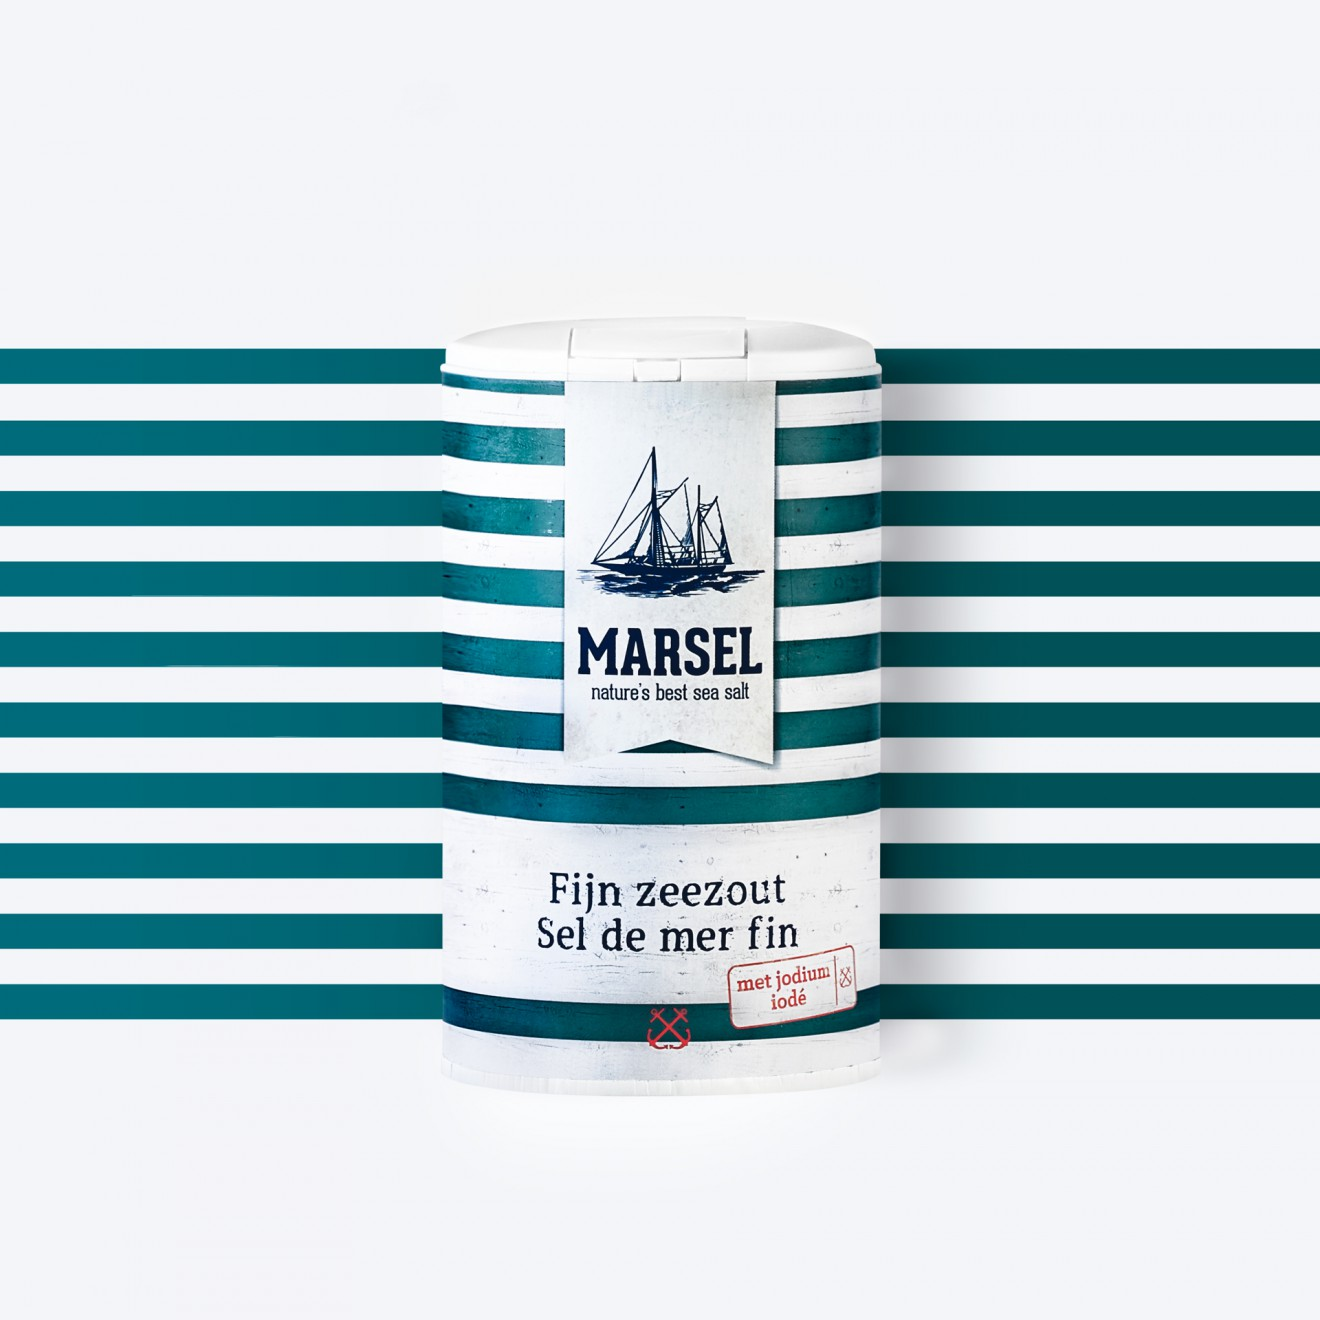 Quatre Mains package design - packaging, design, sailor, marsel